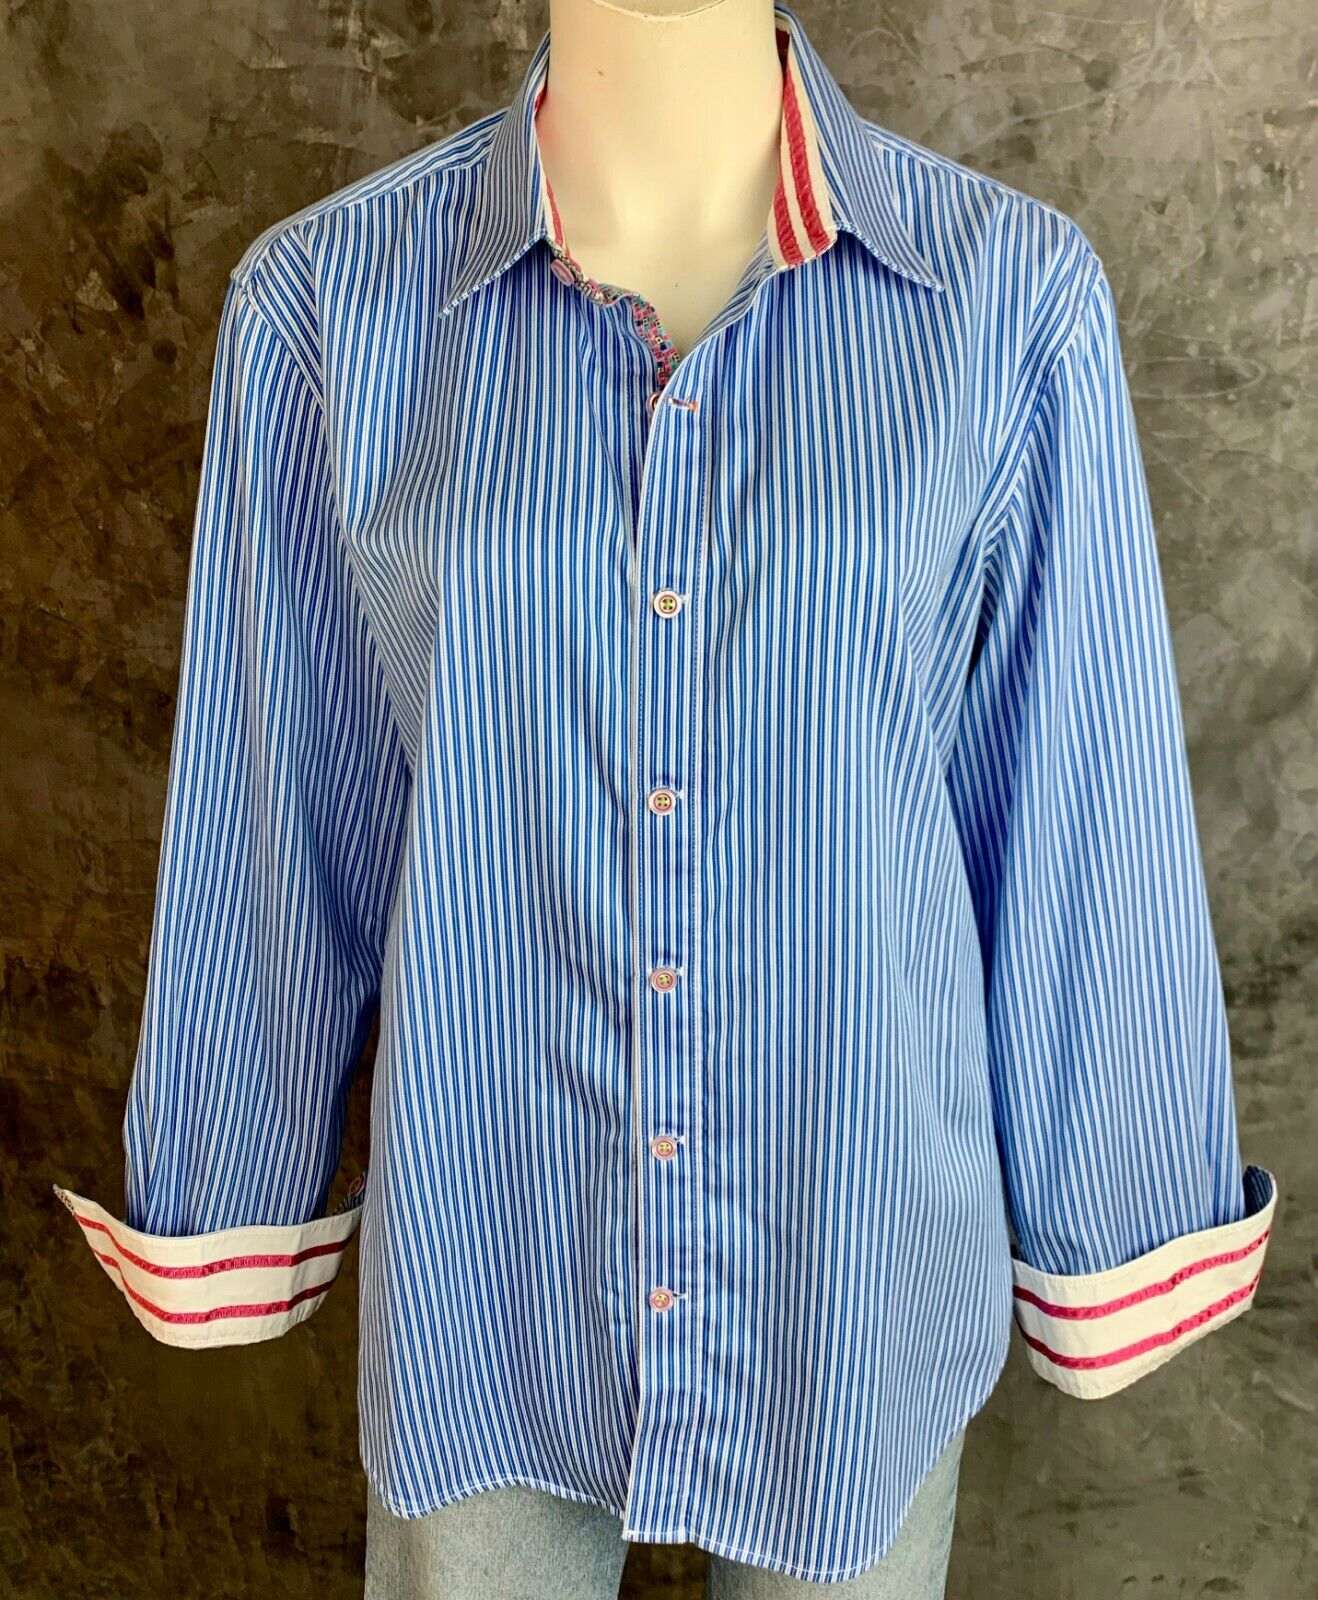 Robert Graham Mens Cotton Multi colord Striped Dress Shirt sz L (8594)